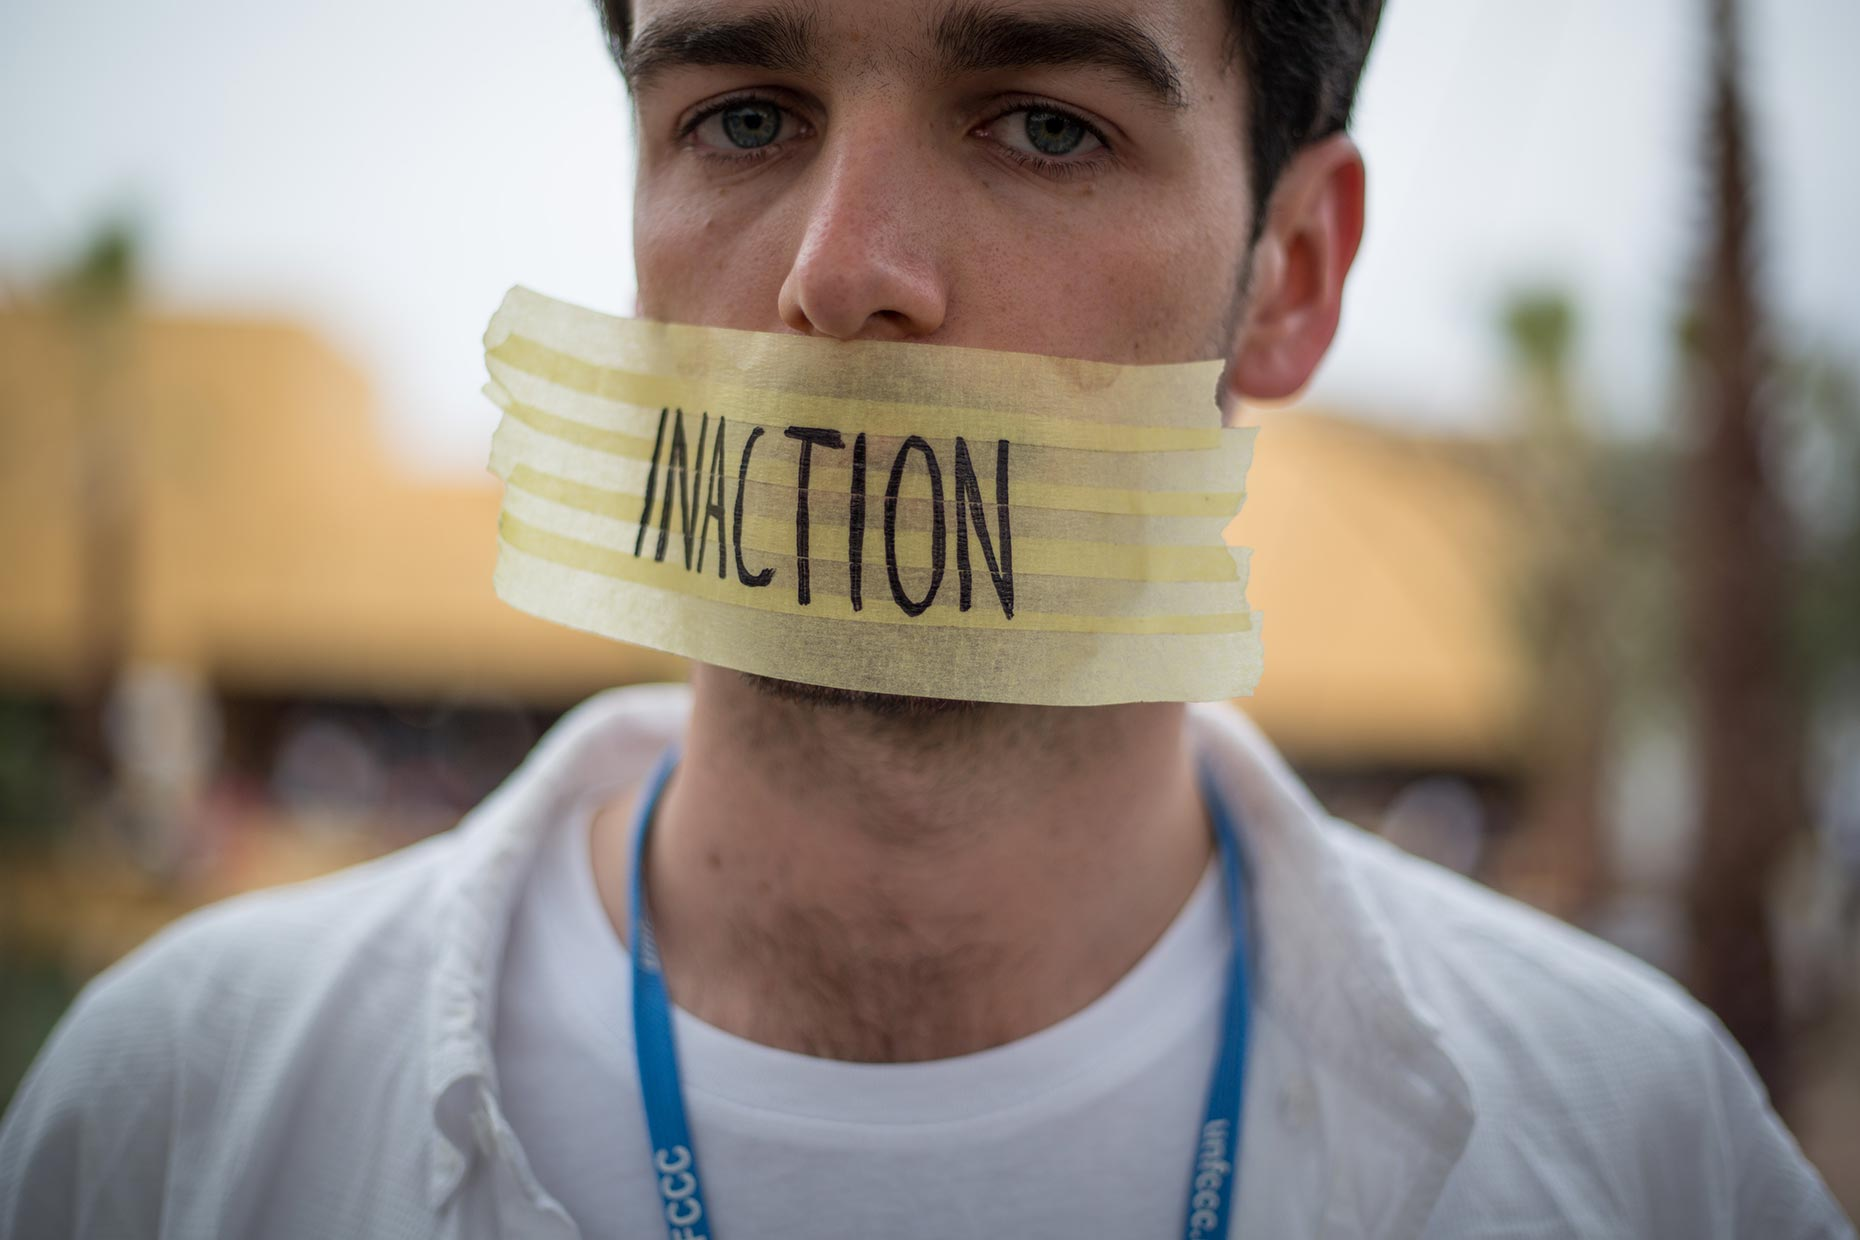 Inaction written on tape over mouth, by Scotland Greenpeace photographer